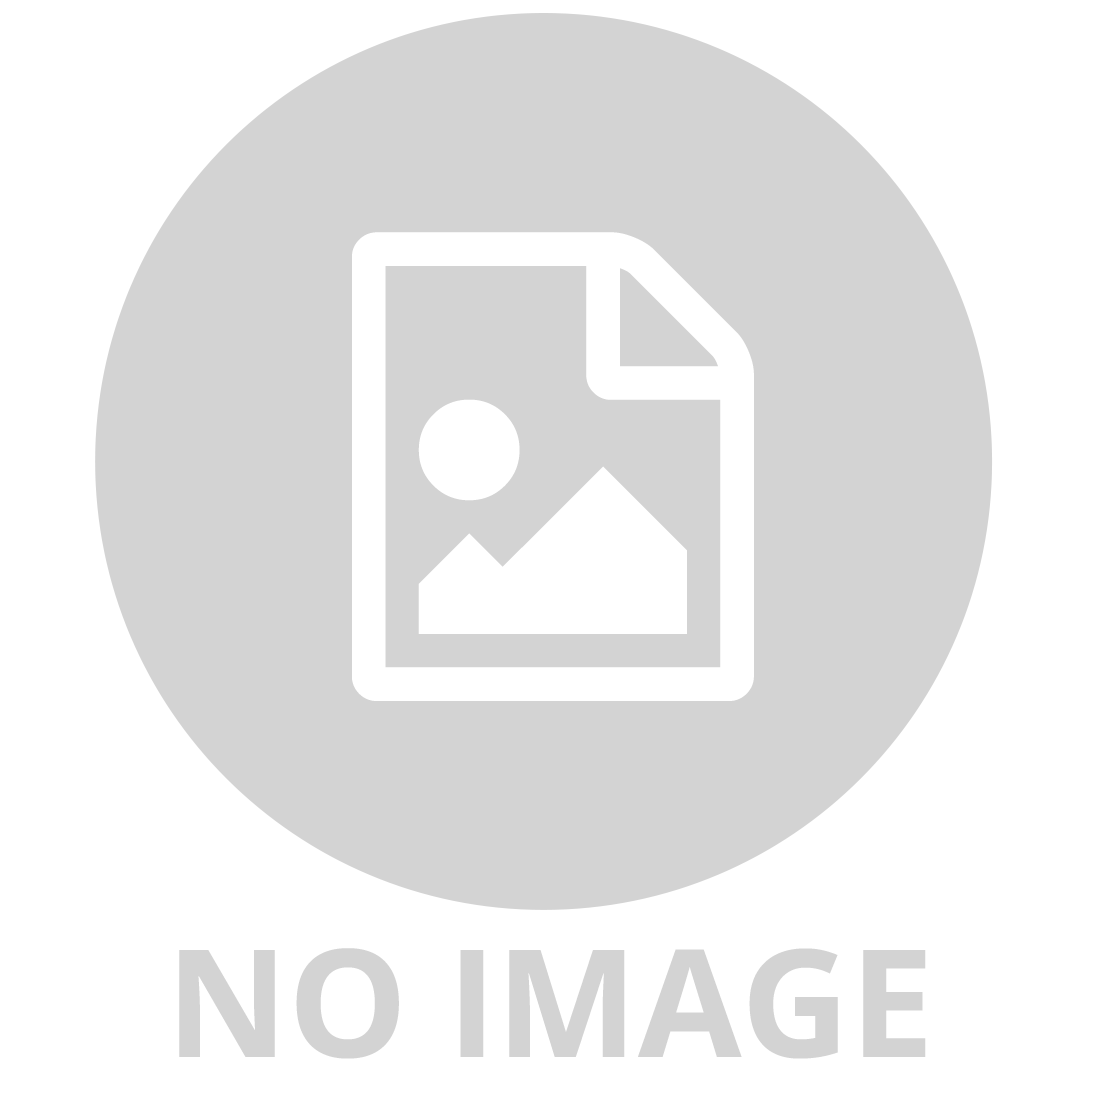 COUNTRY LIFE SET WITH PICKUP